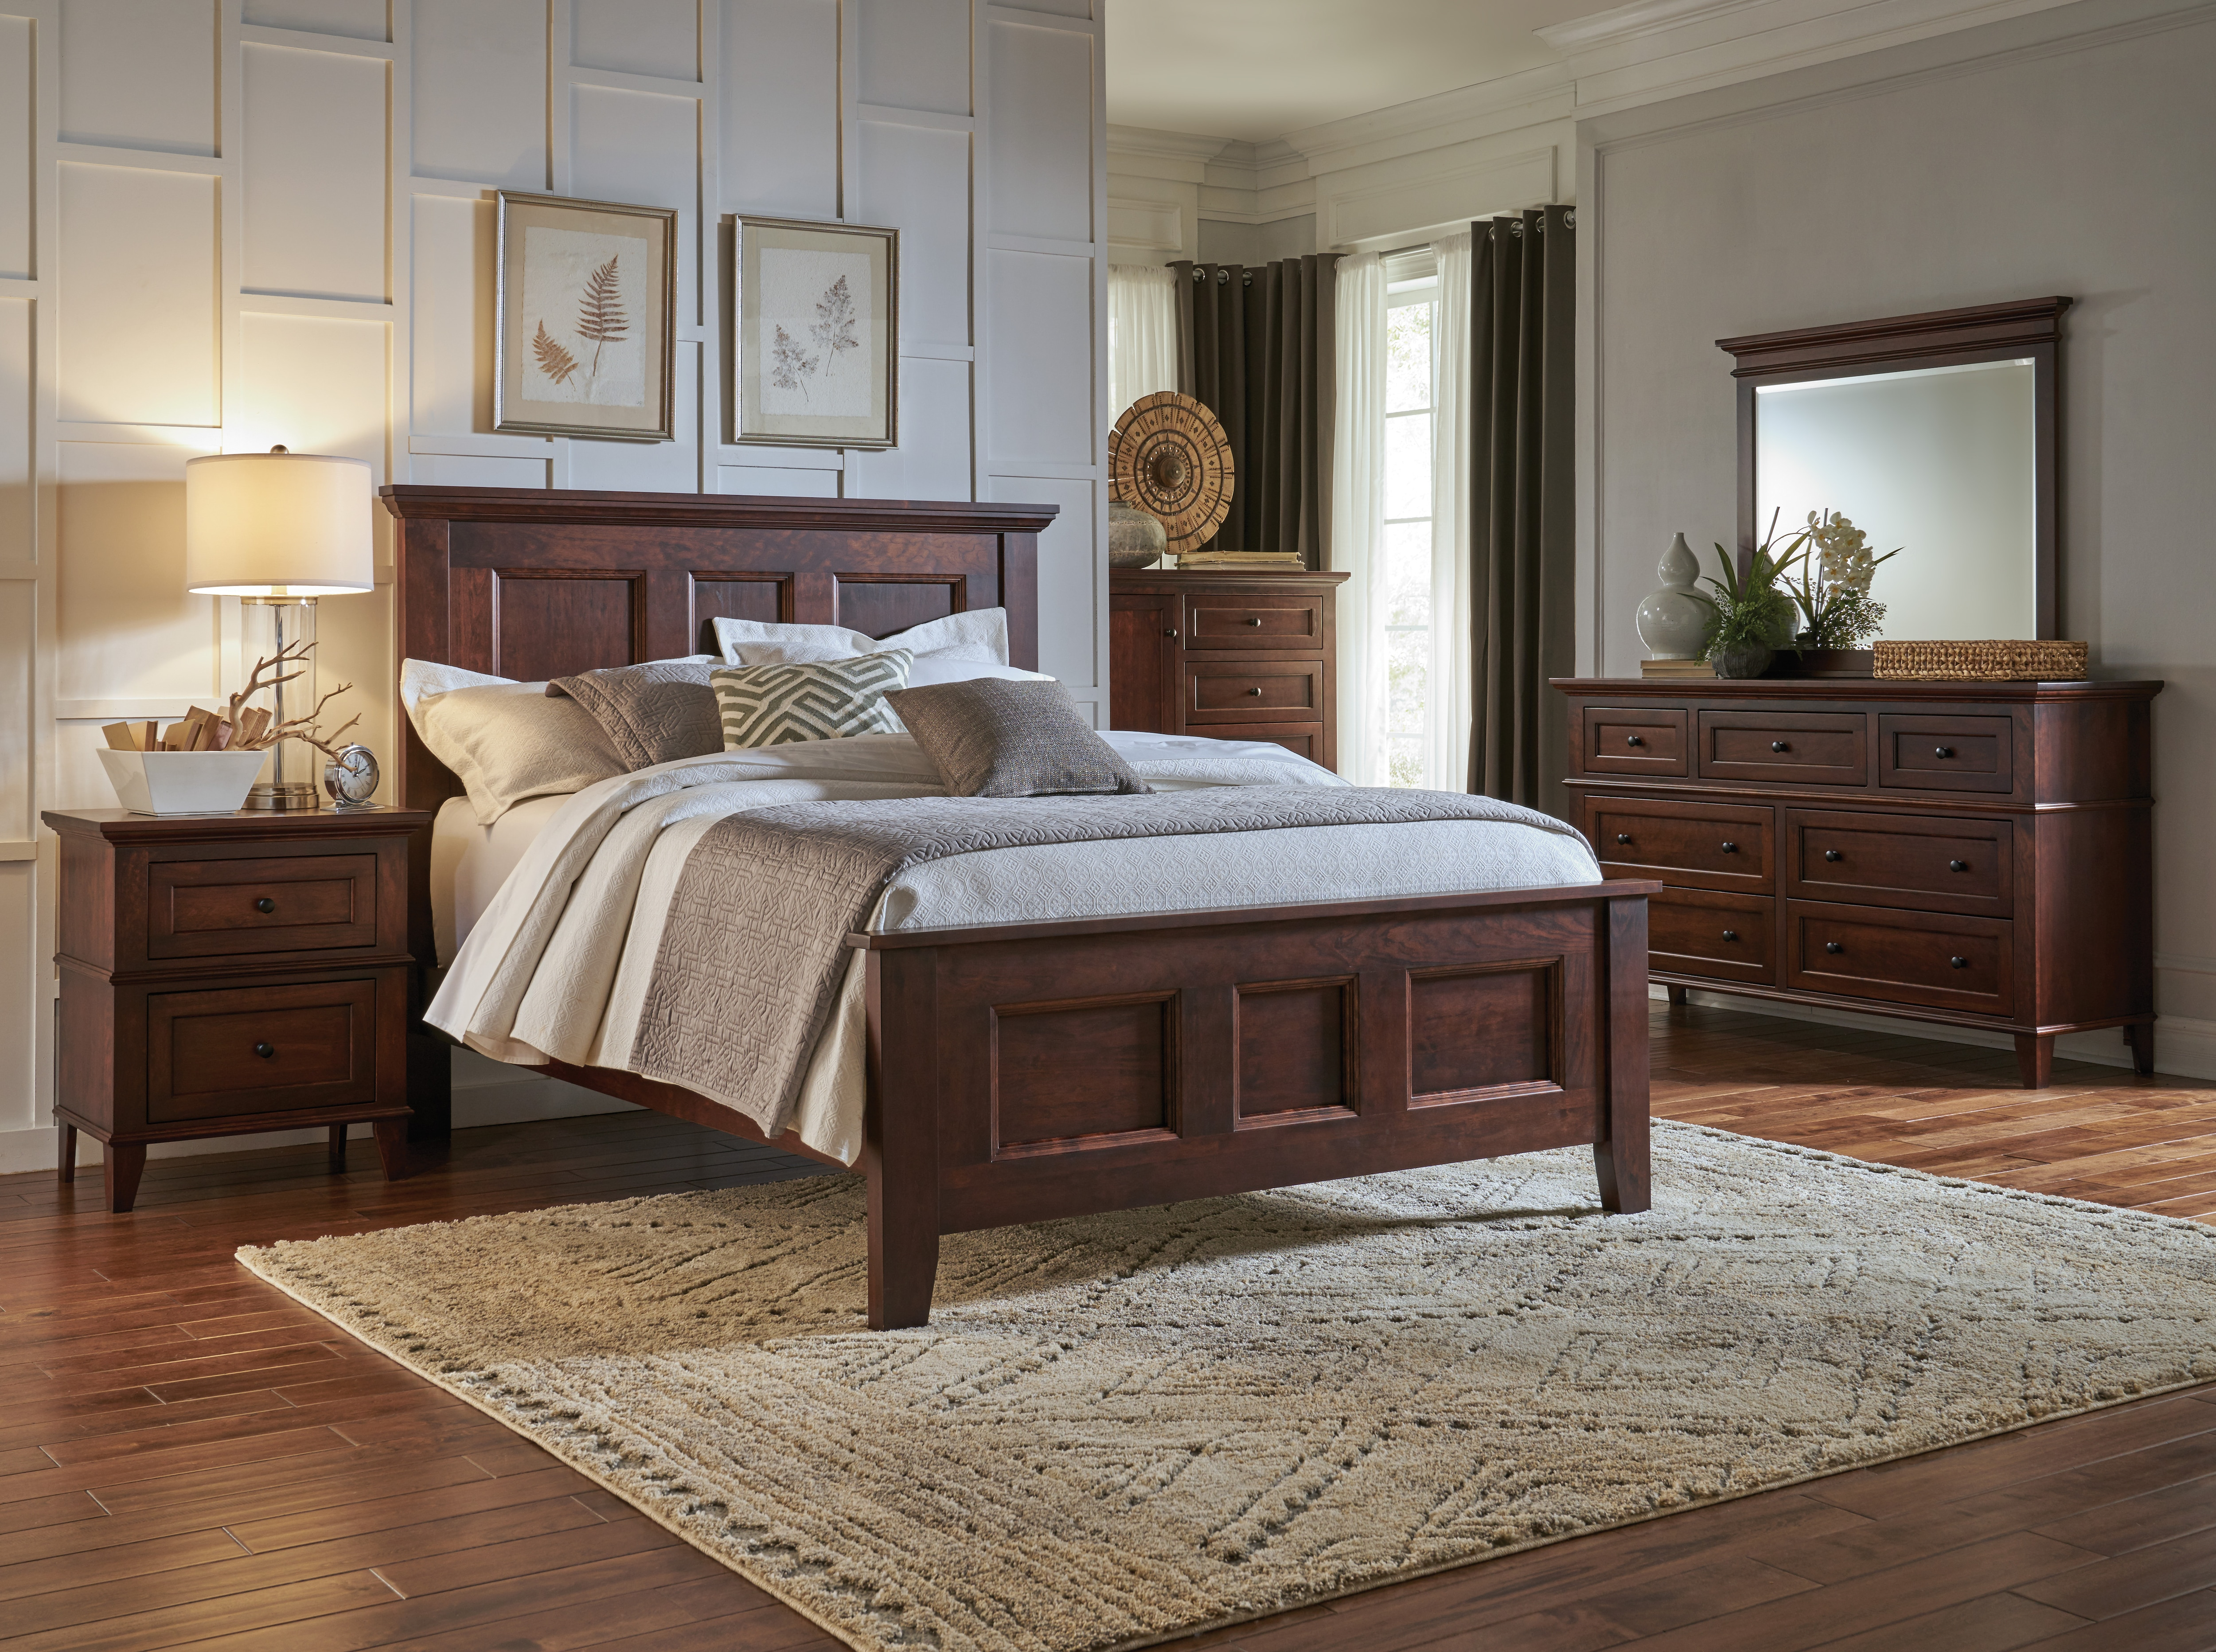 bedroom levin furniture 12080 | 514546 fit inside 320 320 composite to center center 320 320 background color white